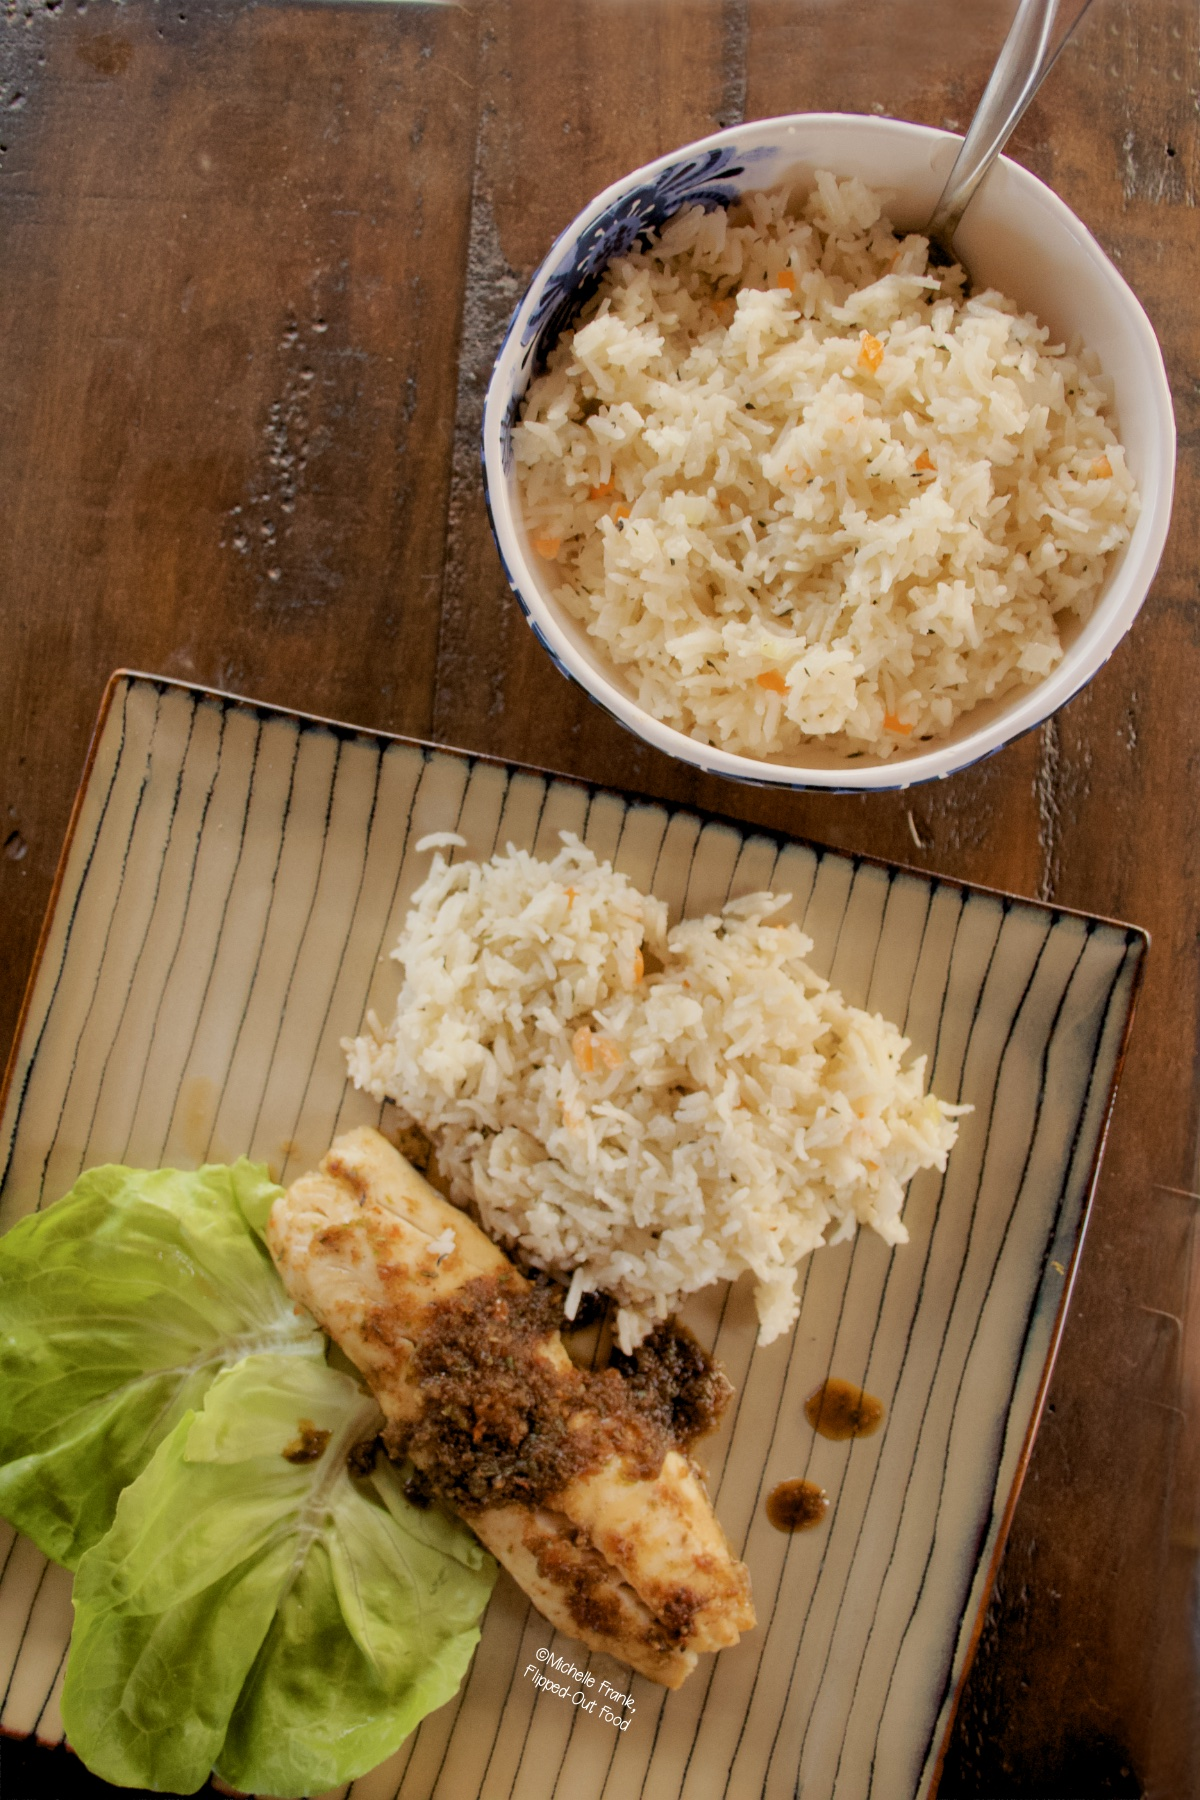 Coconut-Habanero Rice in a serving bowl next to a plate with a serving of the rice, a tilapia filet with jerk sauce, and some bibb lettuce.